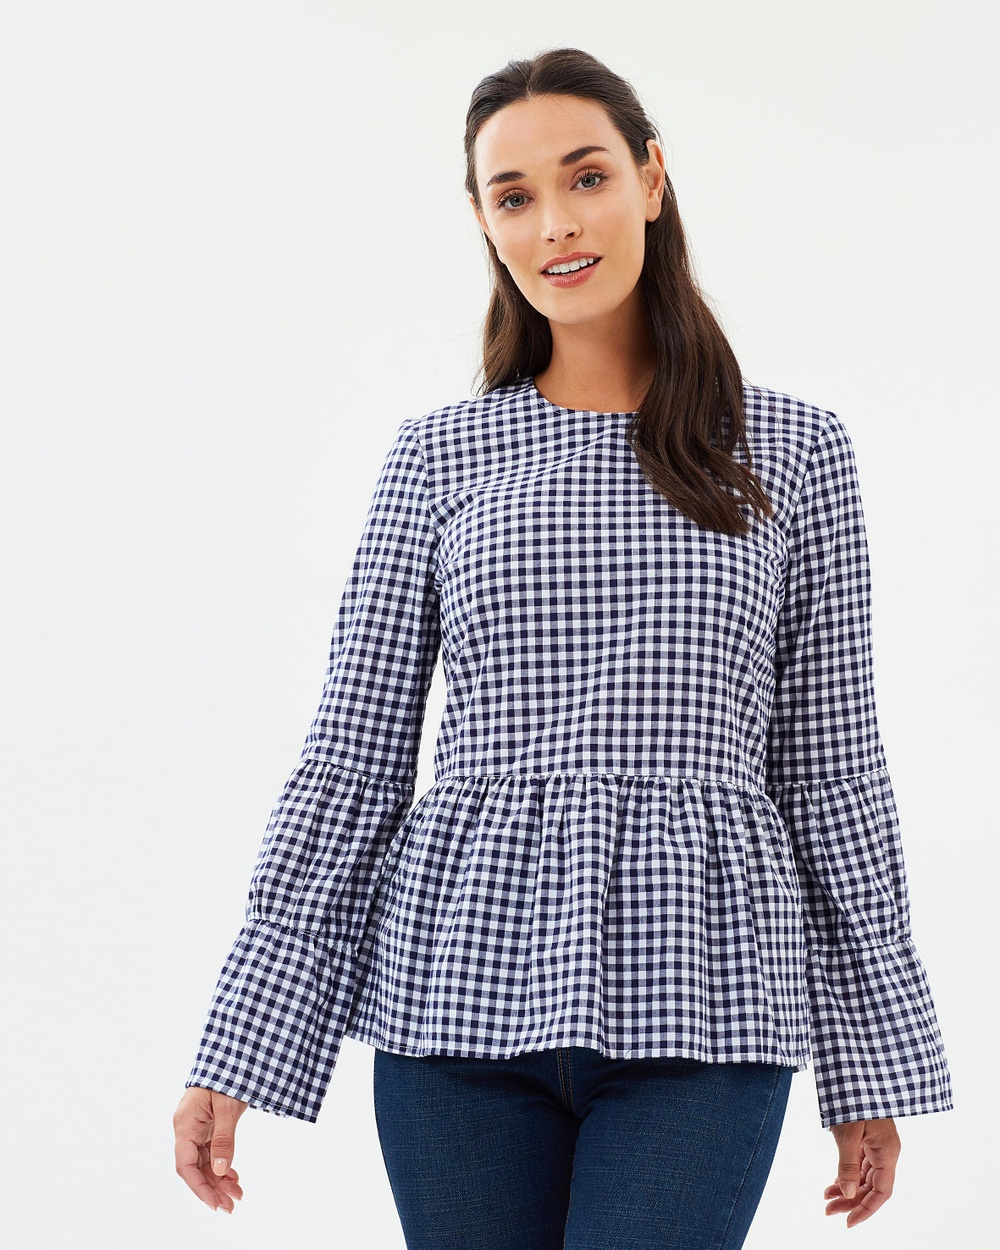 Warehouse Gingham Smock Top Tops Navy White Gingham Smock Top